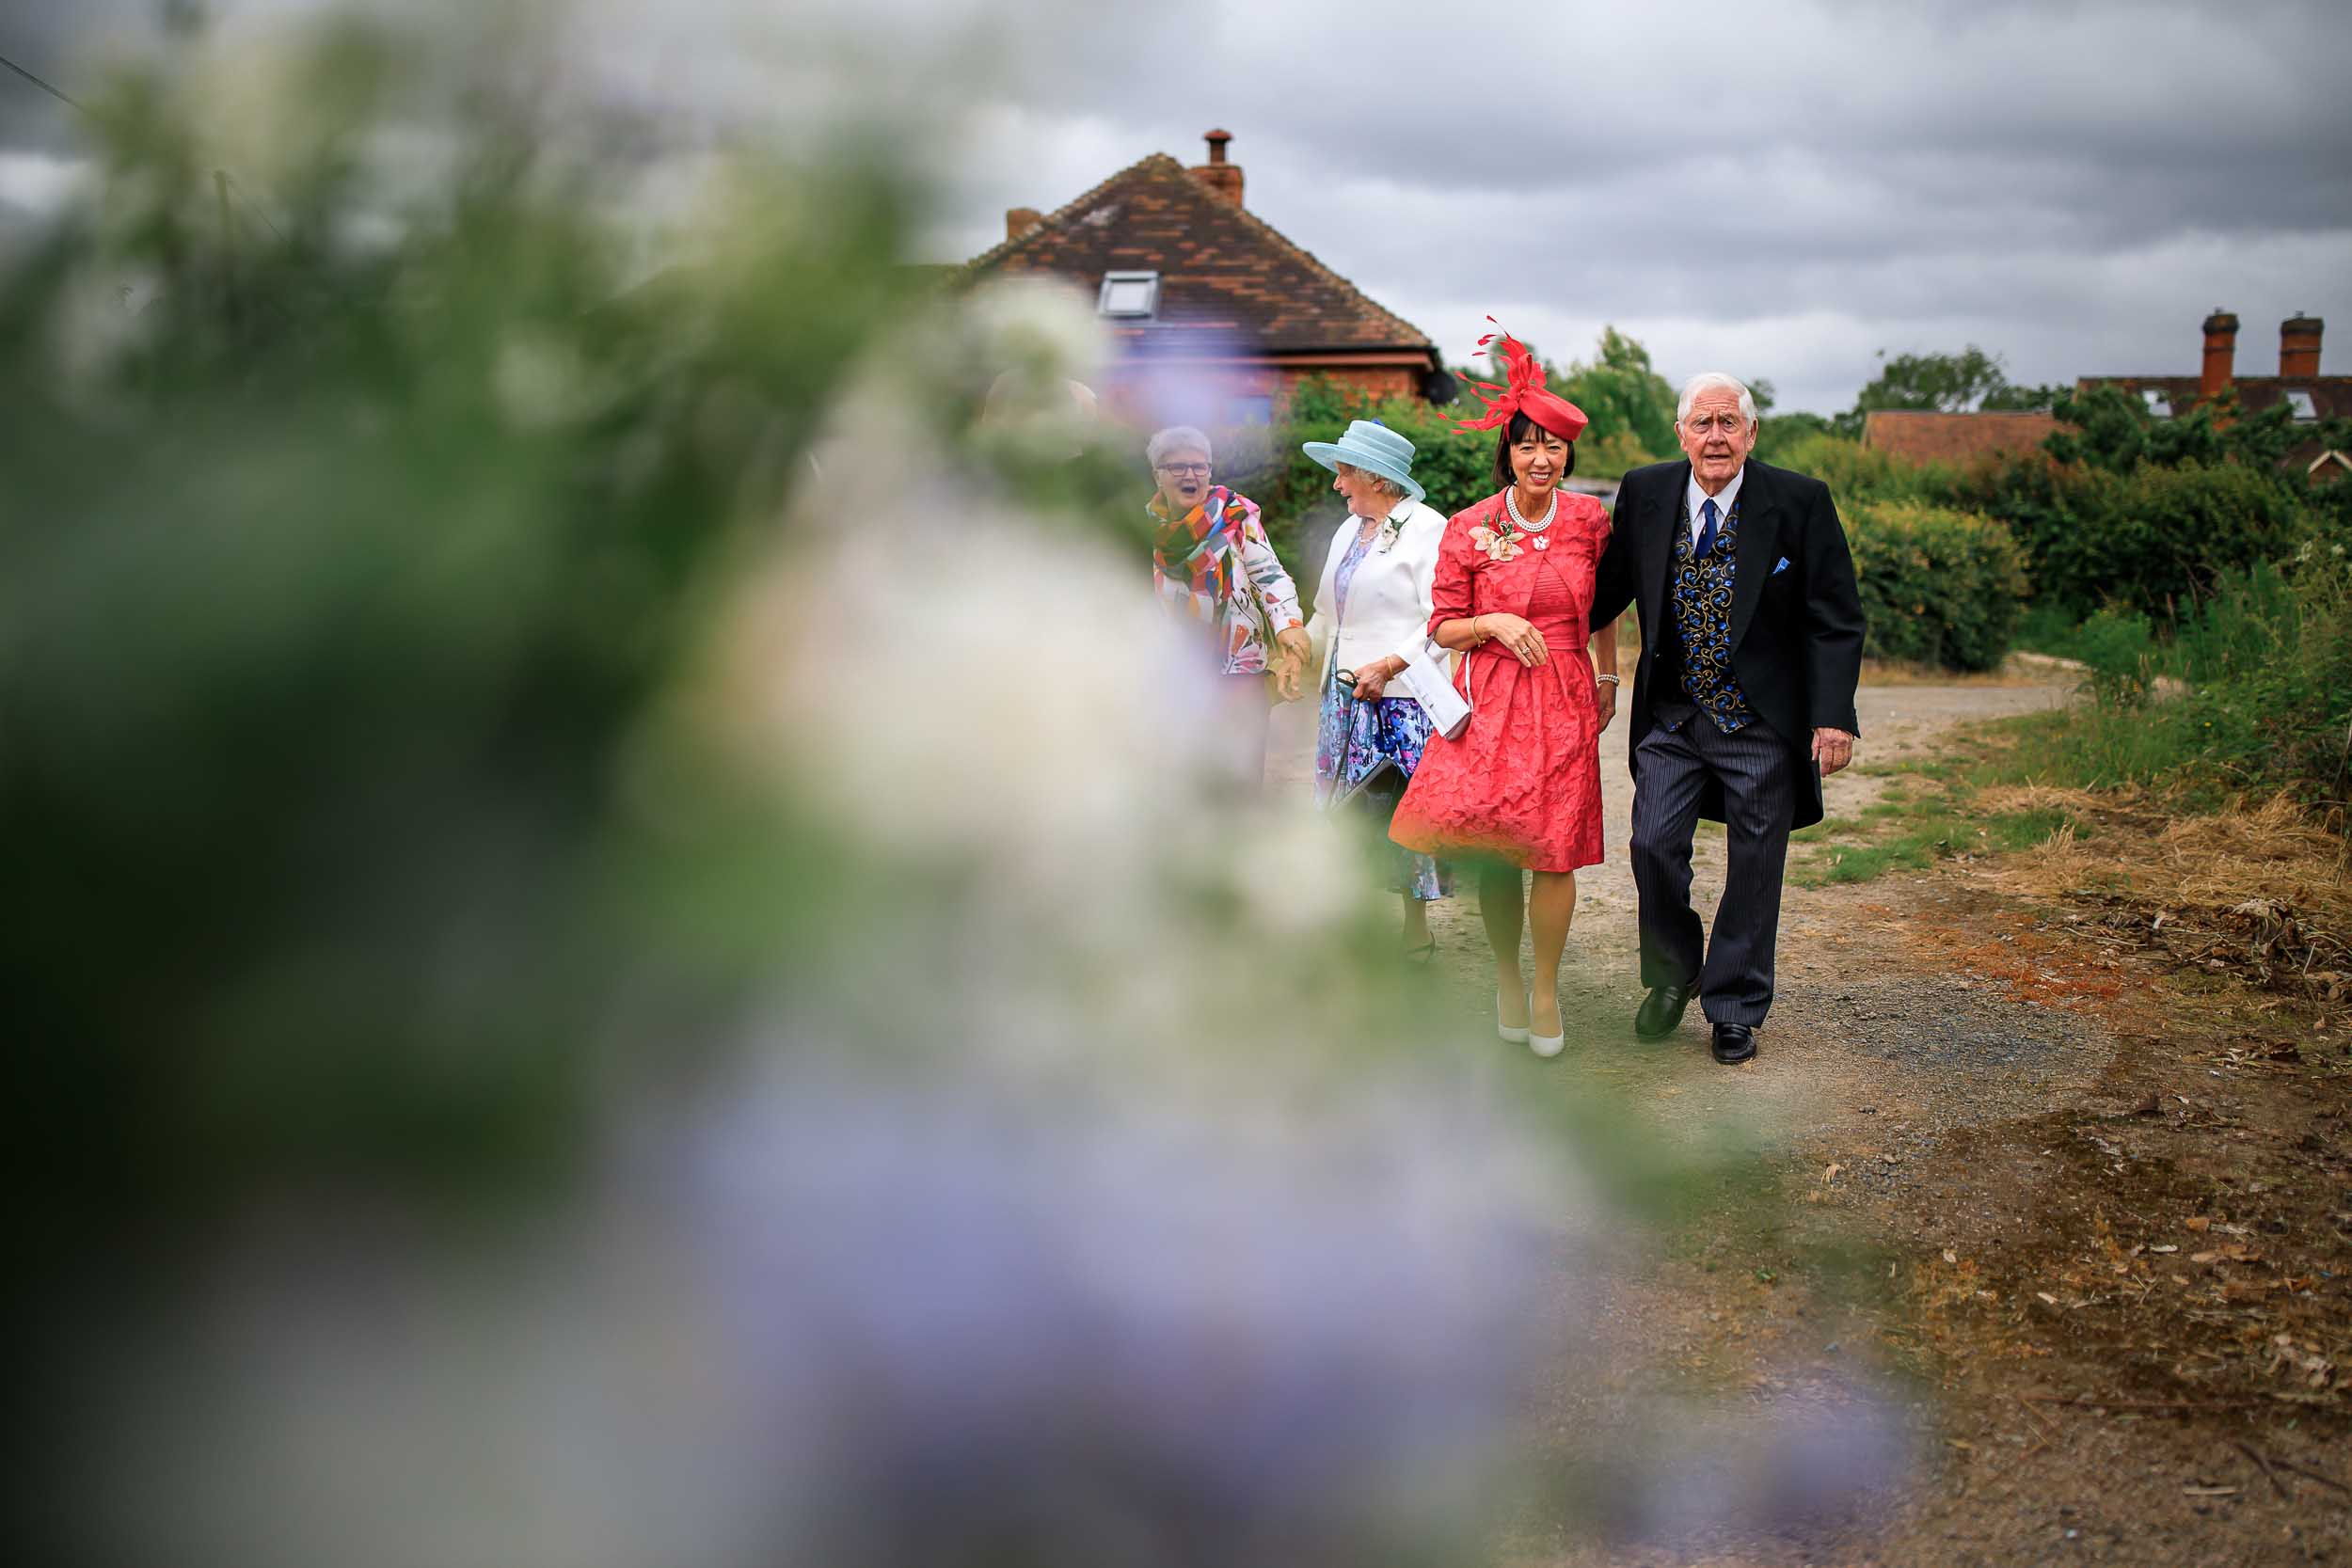 weddings, Eastnor, Herefordshire, Castle, Photographer, Eastnor Castle, Wedding Photographer, Herefordshire, Herefordshire wedding photographer,